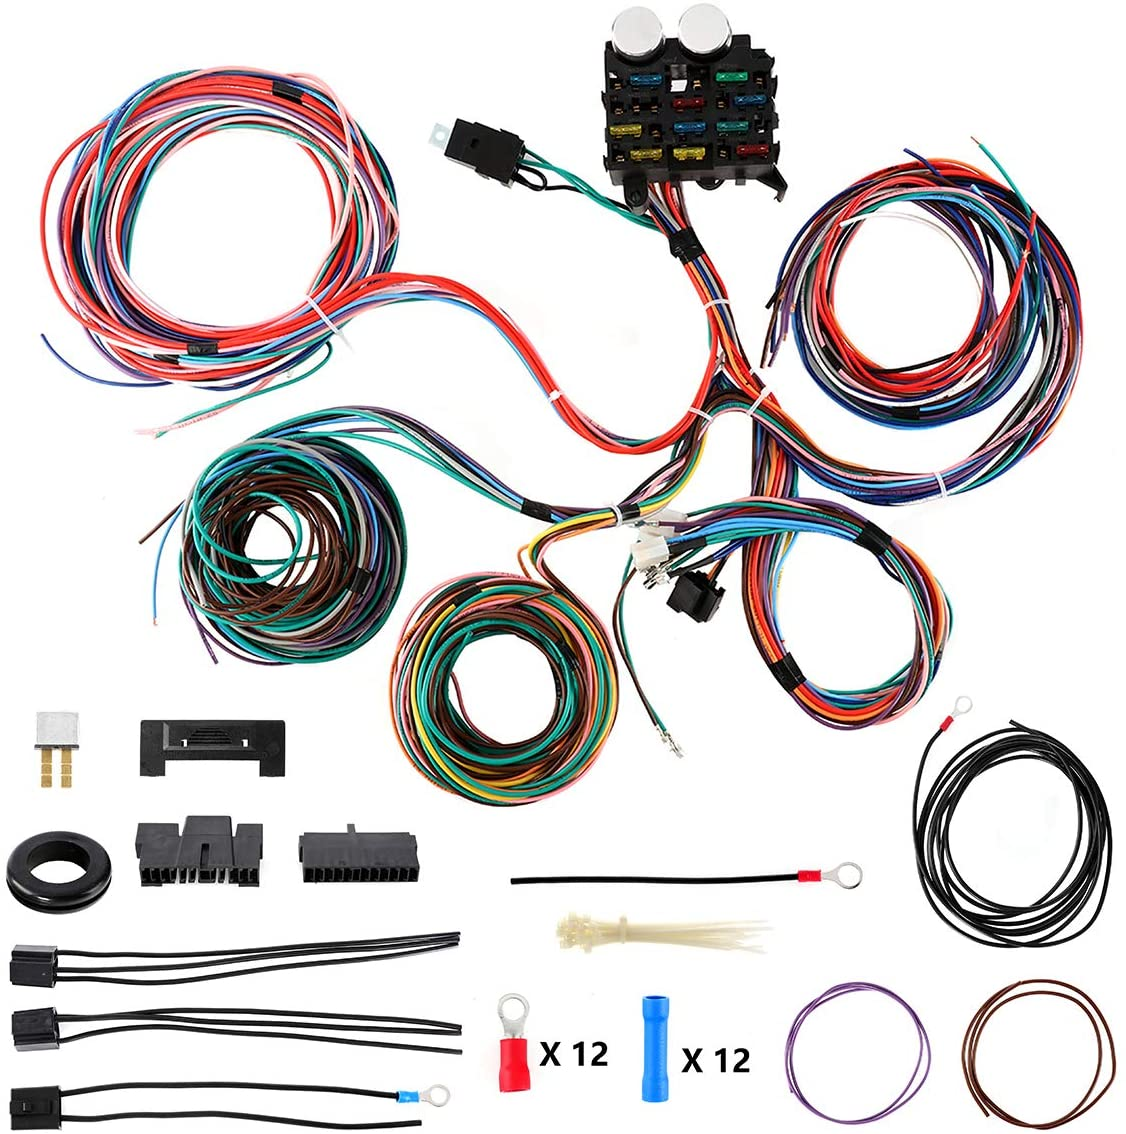 Partol Wiring Harness Kit 12 Circuit Hot Rod Universal Long Wires Wiring Harness Muscle Car Hotrod Street Rod w/Detailed Instructions